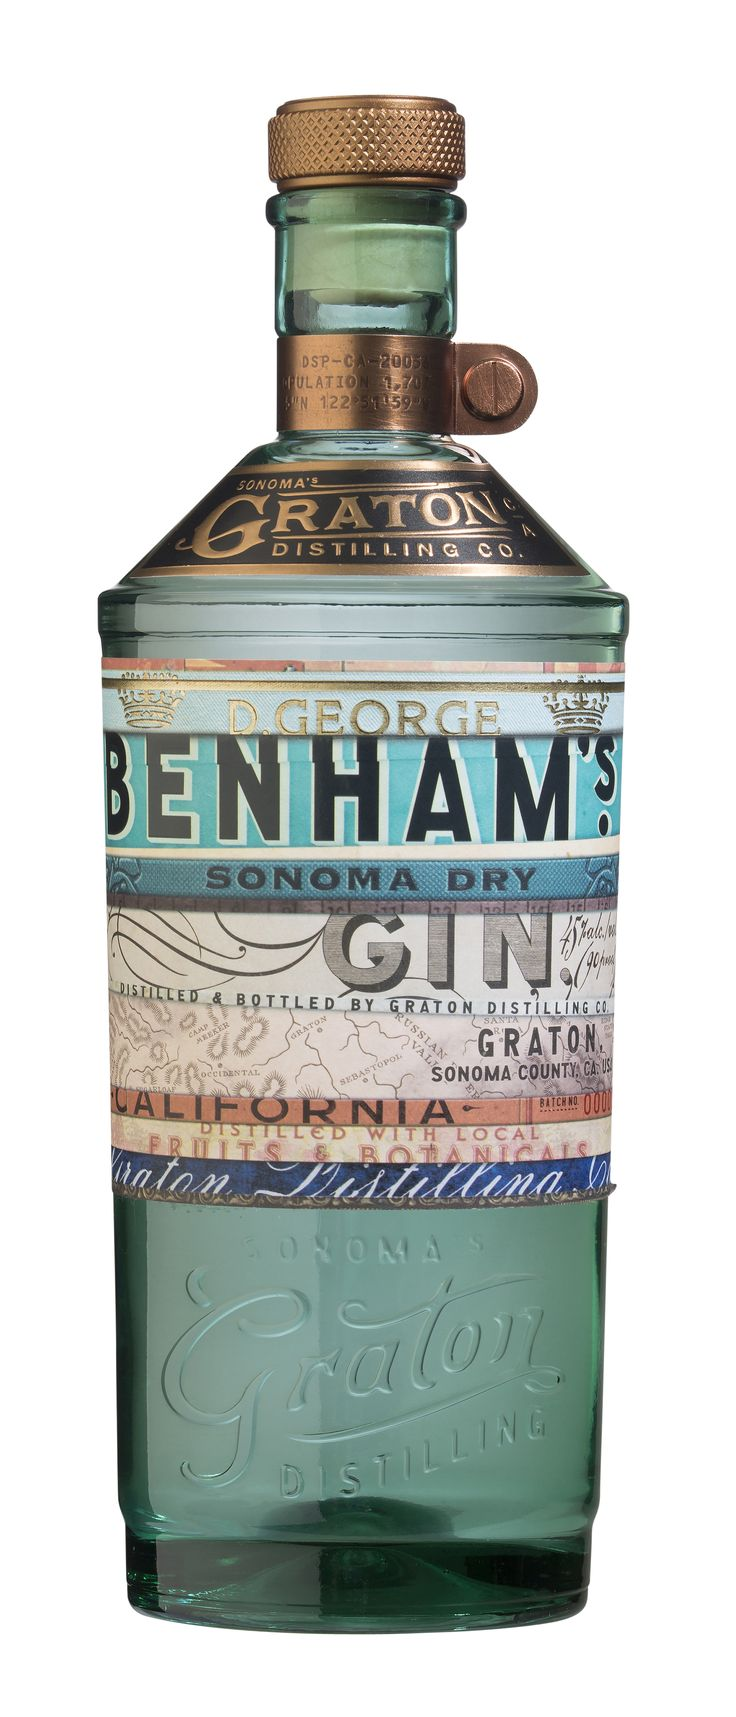 If you like gin, you'll love this one! Distinct flavor, but works well in a variety of drinks.